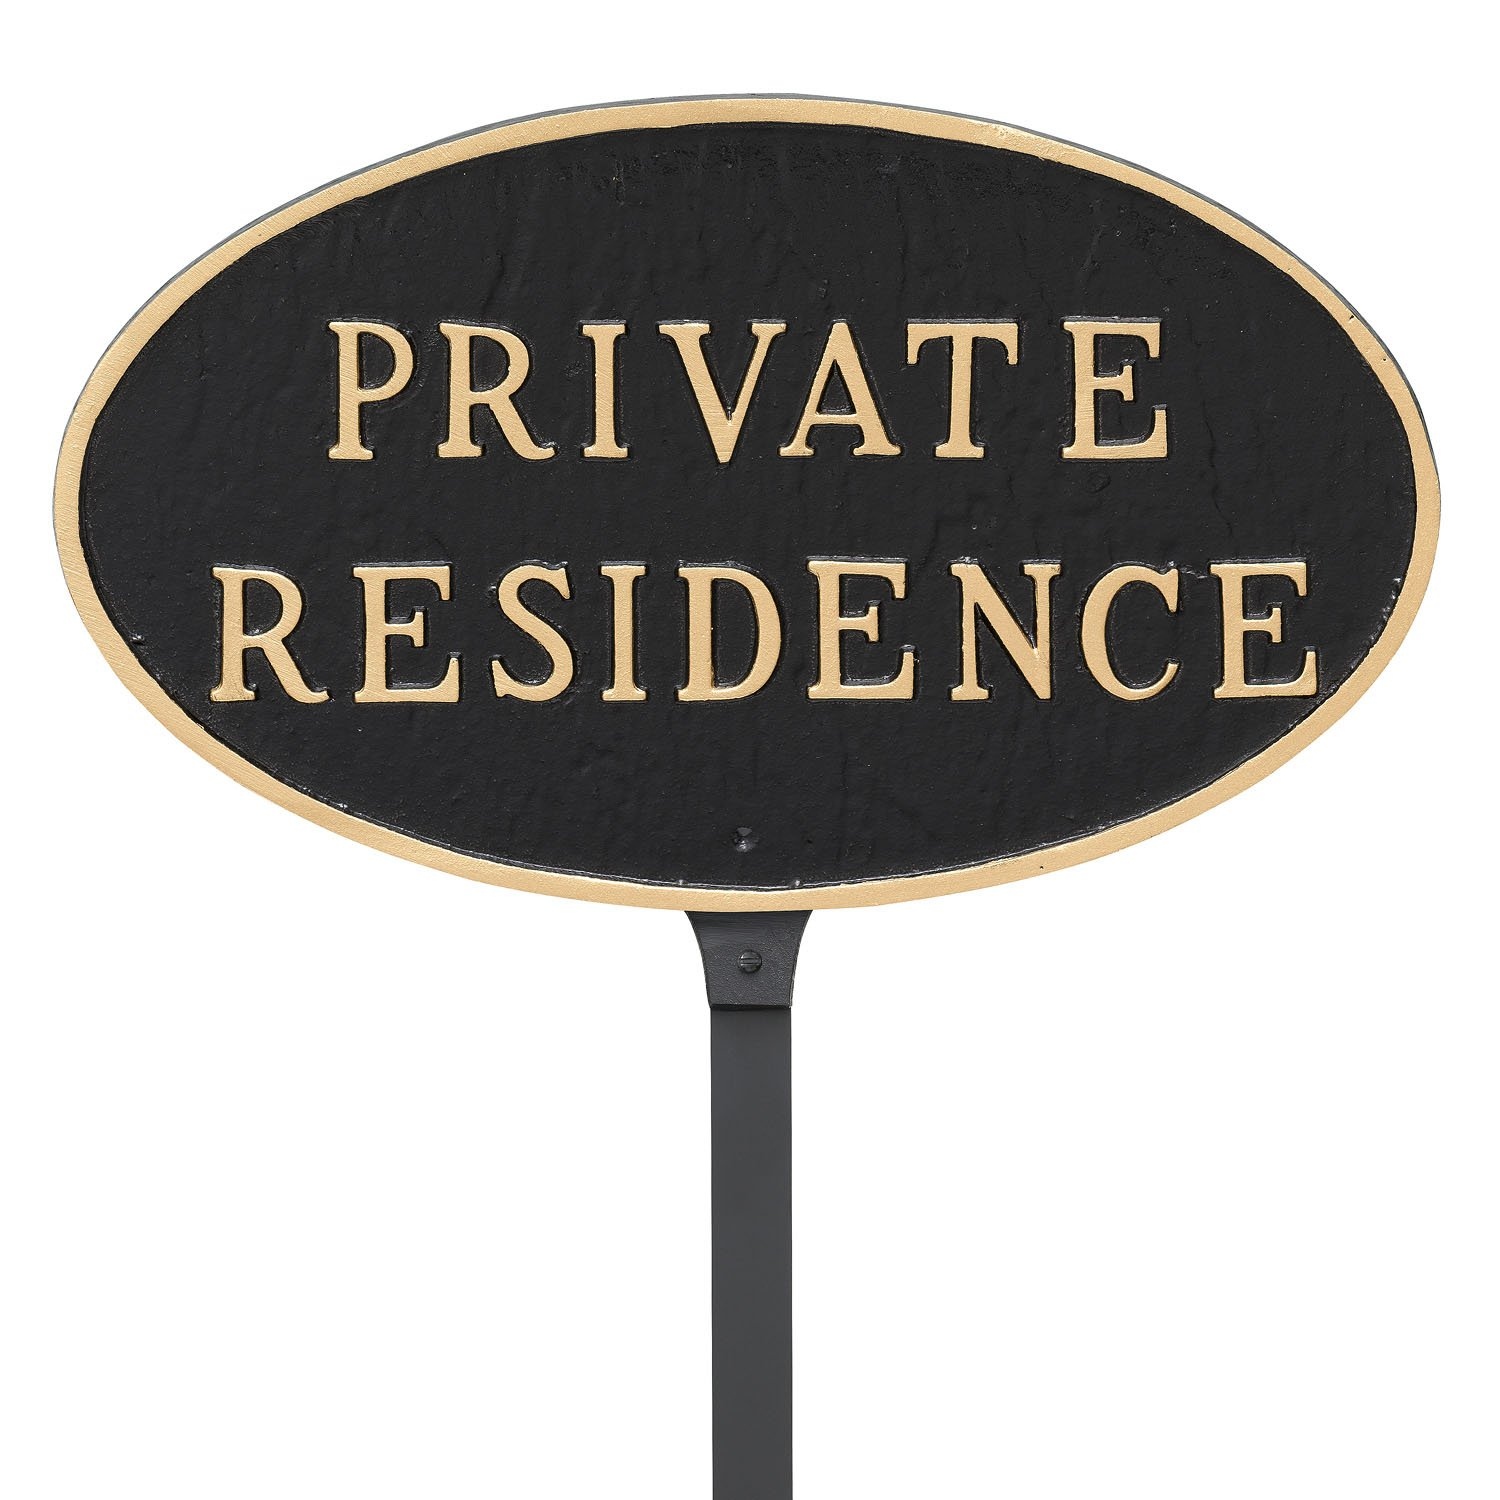 Montague Metal Products 8.5'' x 13'' Oval Private Residence Statement Plaque with 23'' Lawn Stake, Black/Gold